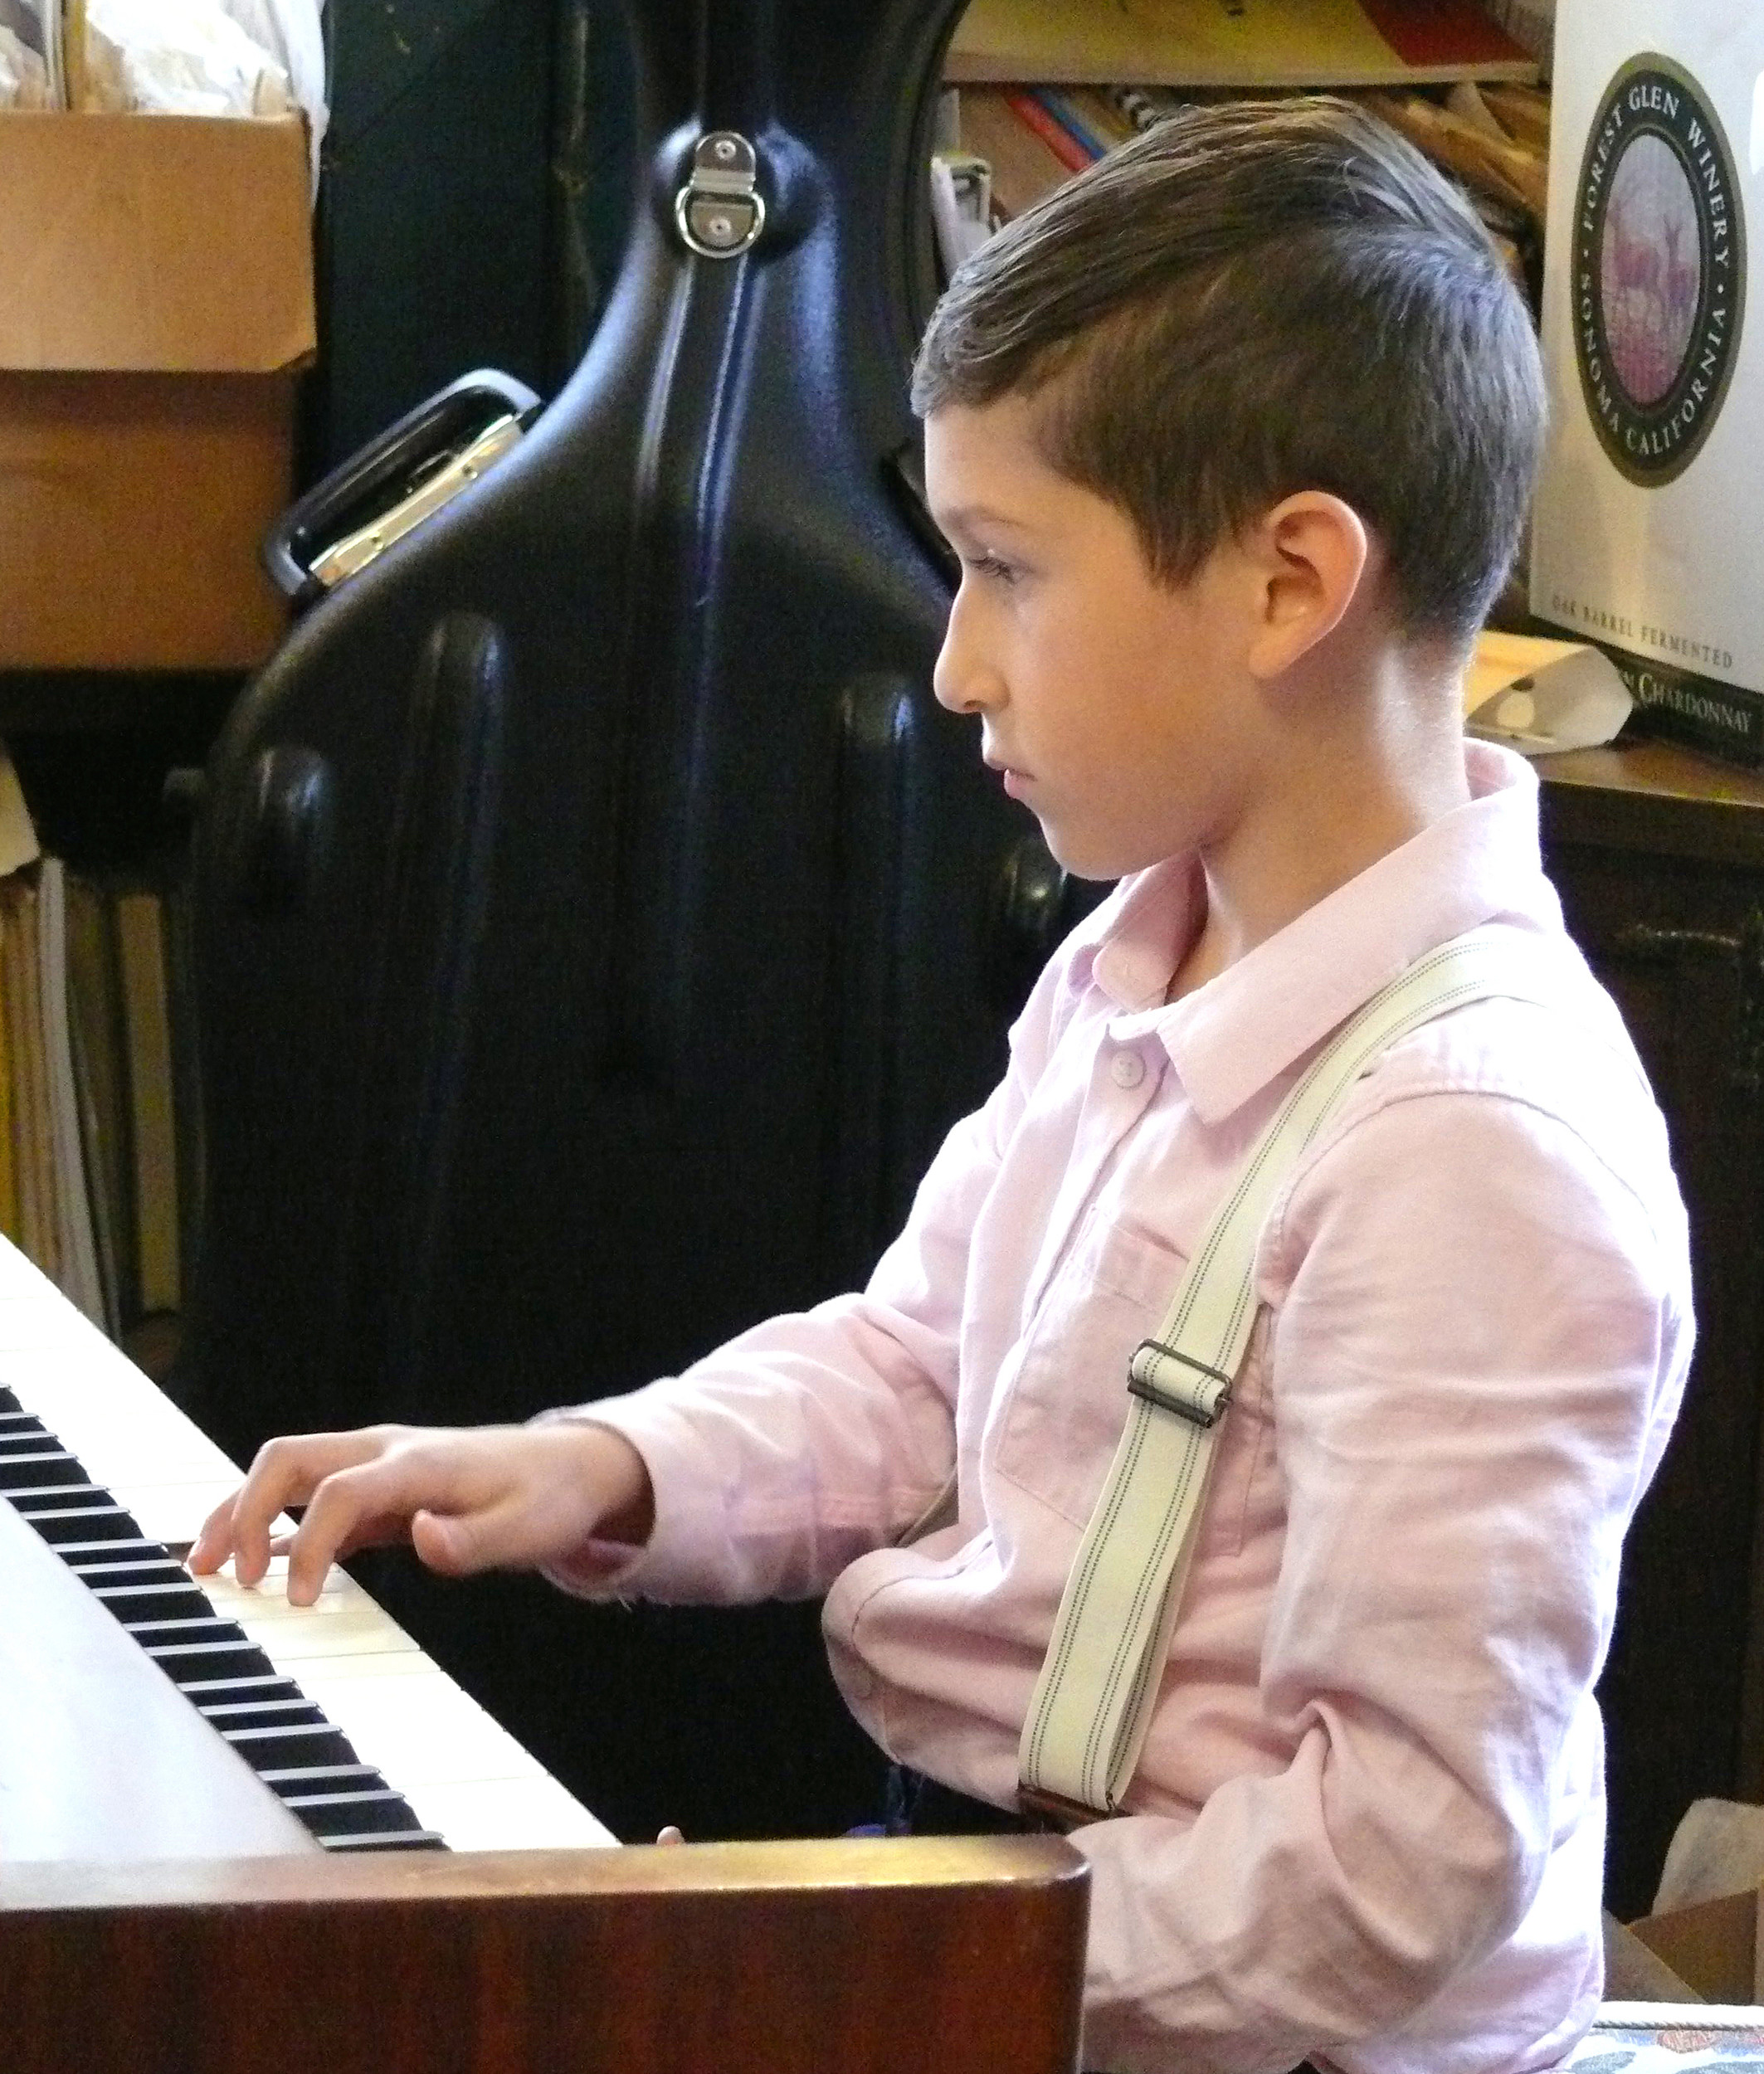 A new star at the piano was 7-year-old Kristian Fajardo, who is being taught classical piano by Lehrman. 